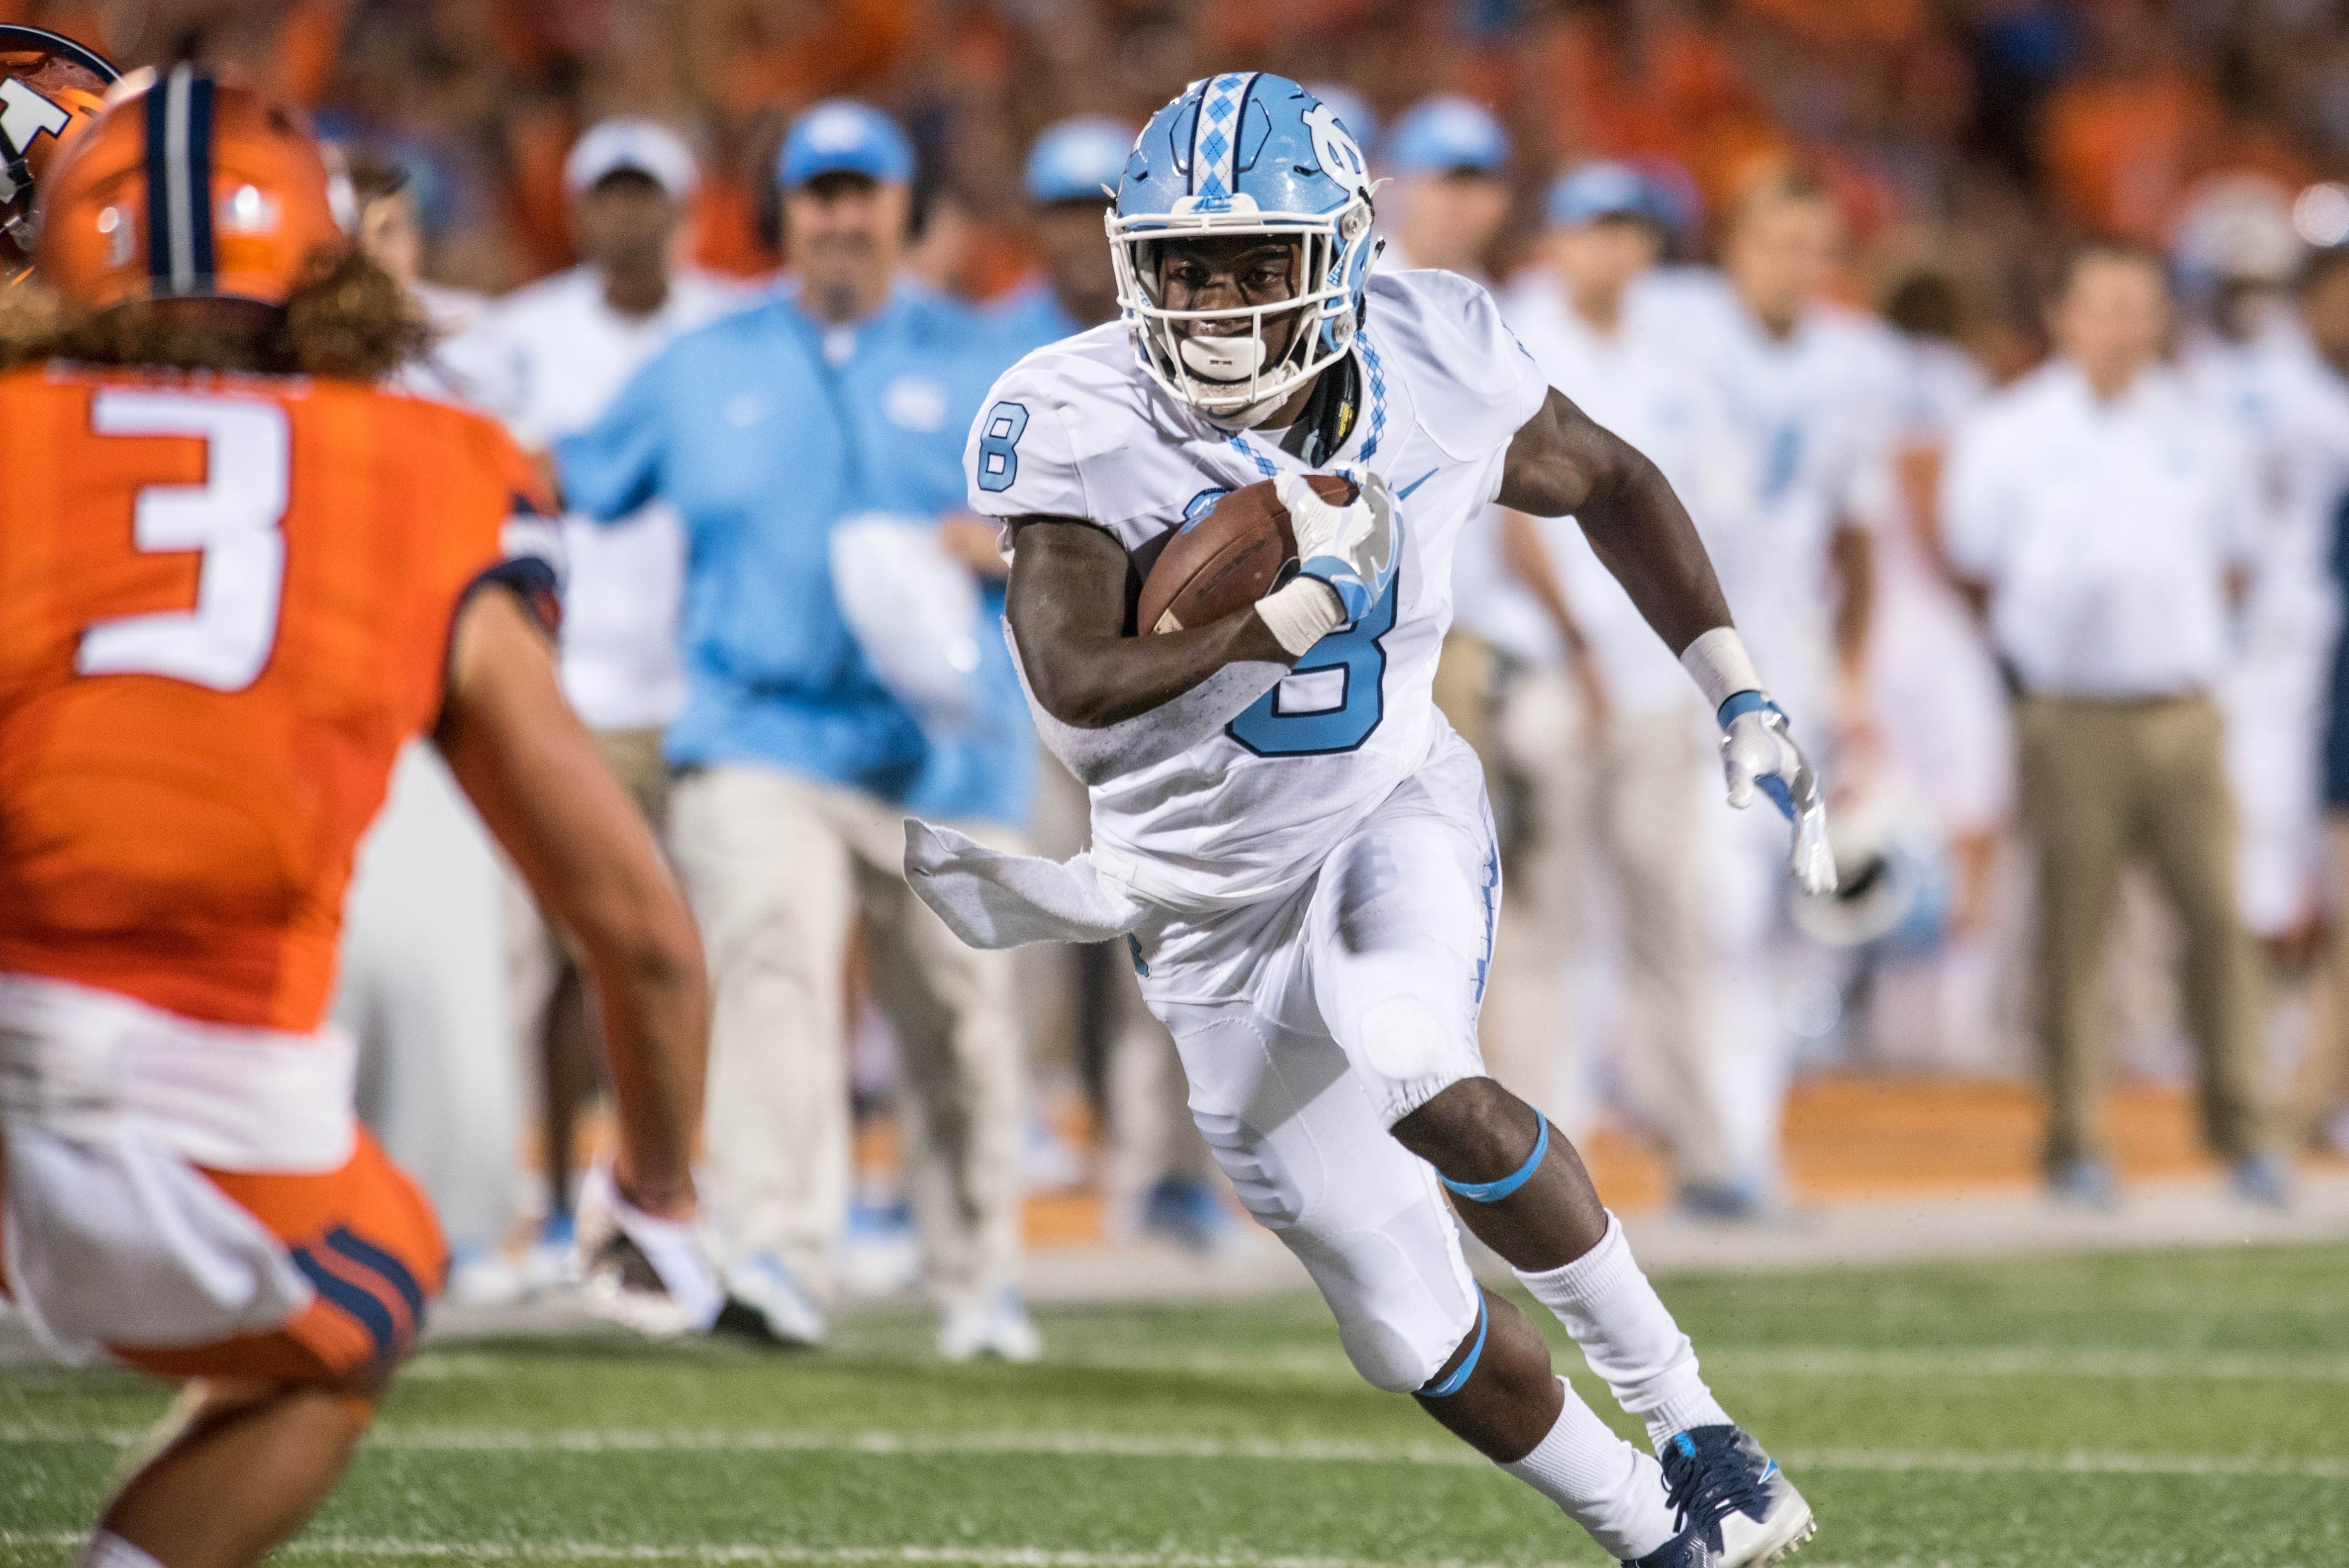 FILE - In this Sept. 10, 2016, file photo, North Carolina running back T.J. Logan (8) runs the ball during an NCAA college football game against Illinois, in Champaign, Ill. Logan has come up with big runs and long kick returns to start his senior year. A